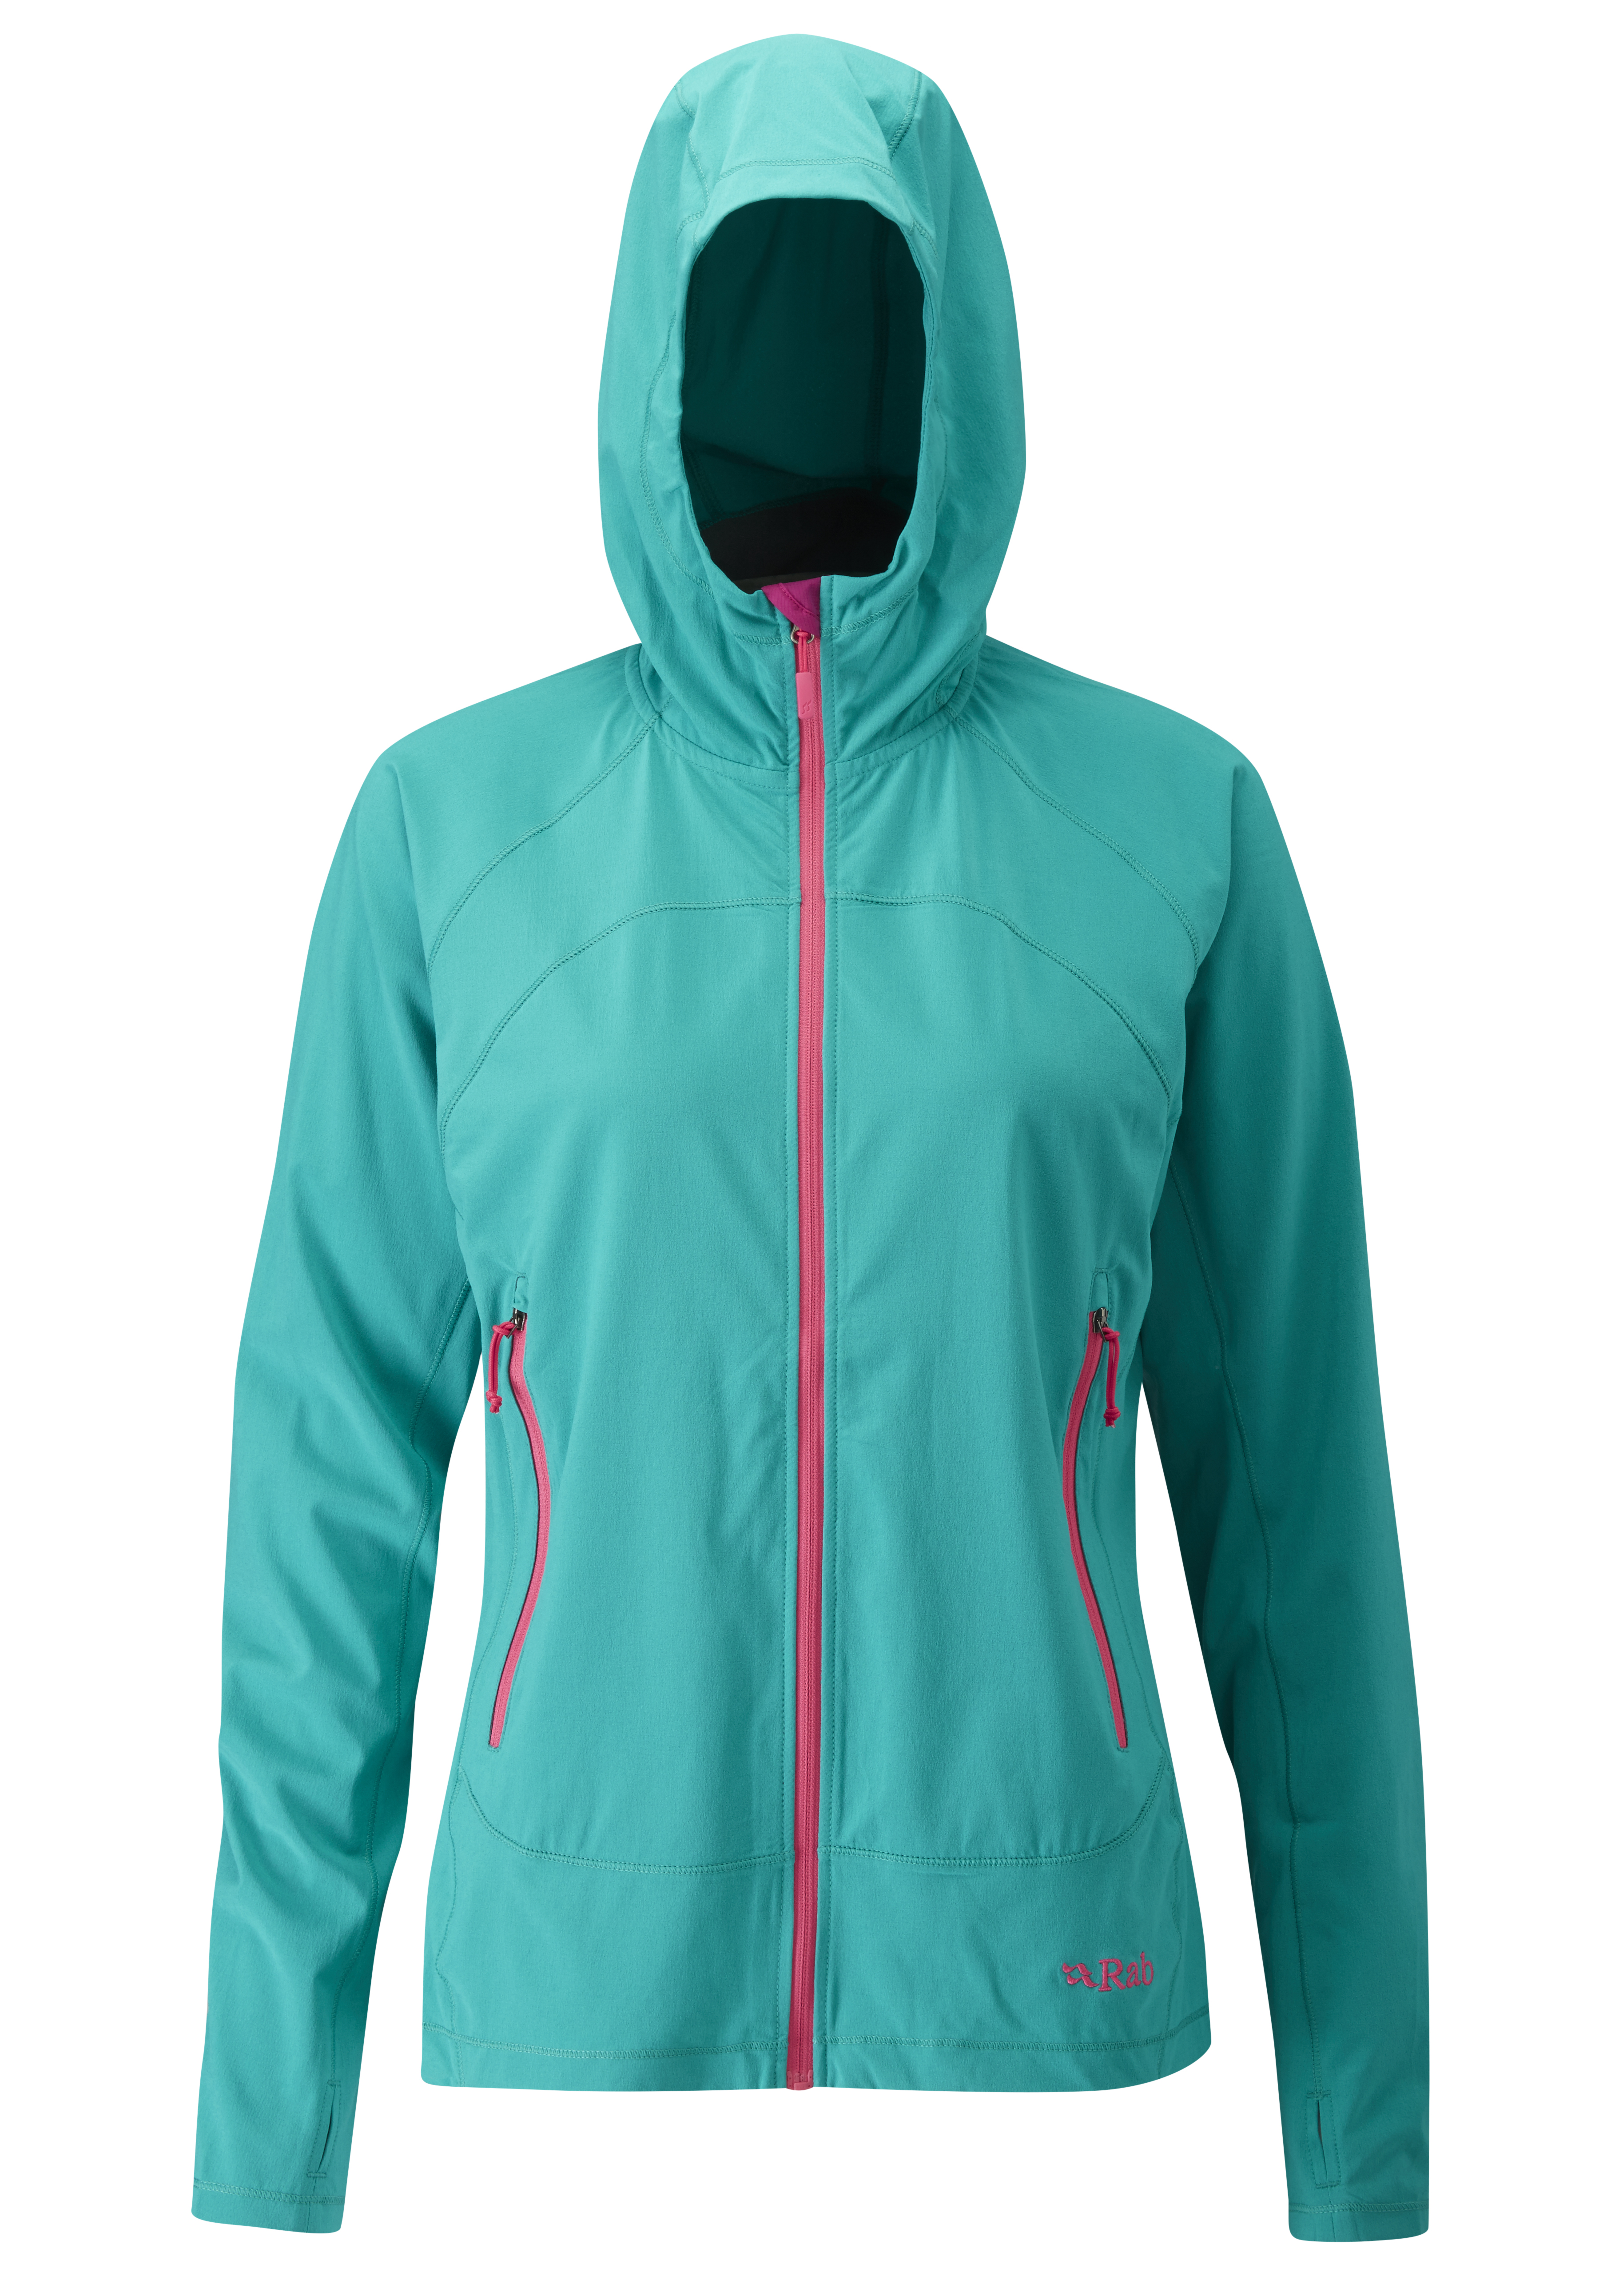 Outdoor Clothing Rab Womens Lunar Jacket Seafoam